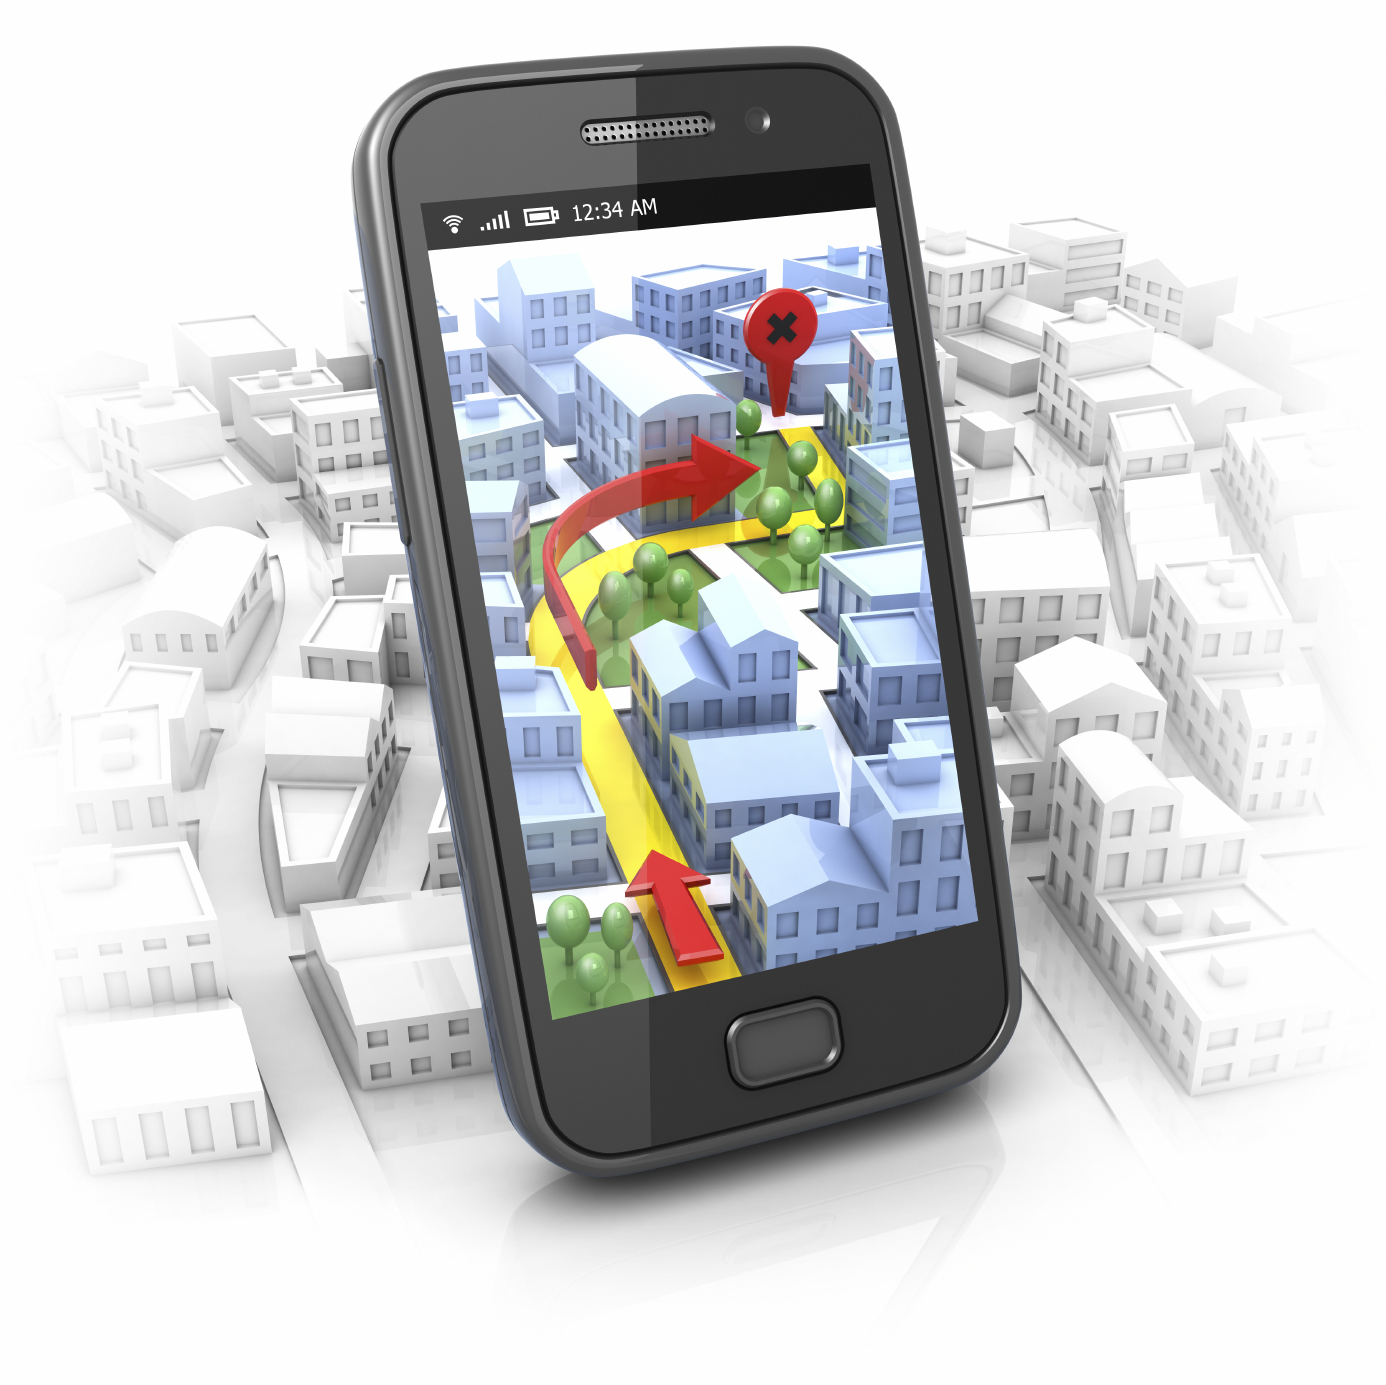 track a cell phone number location top 2015 mobile spyware scott cooper. Black Bedroom Furniture Sets. Home Design Ideas